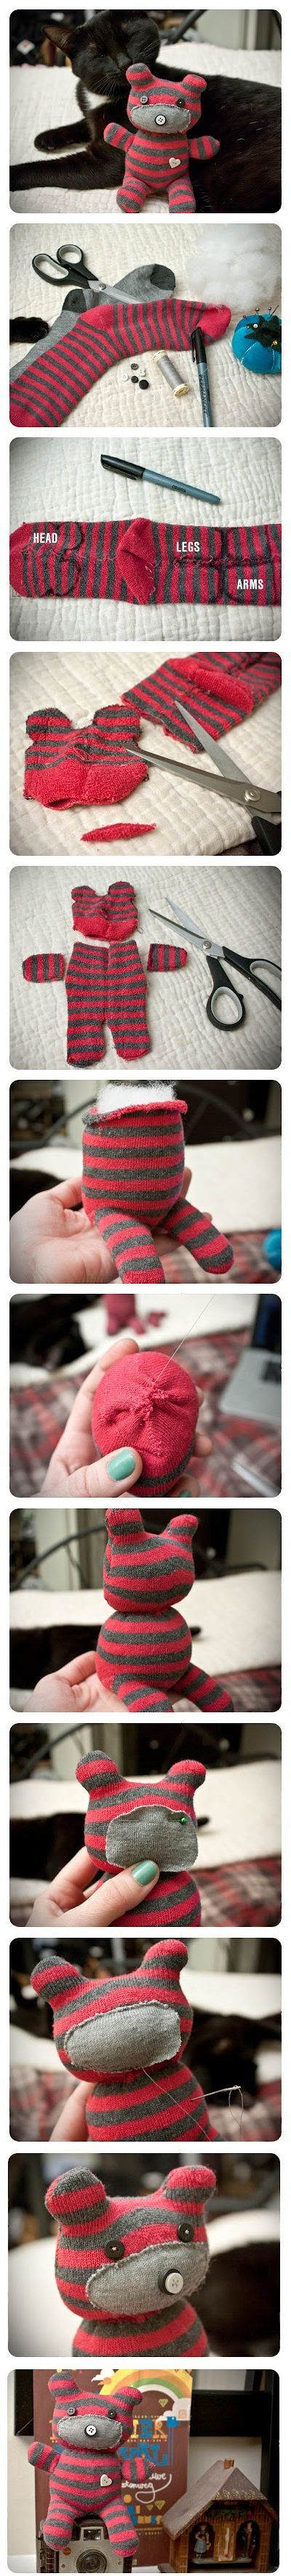 Monkey from the sock with their own hands, master class Toys with their own hands, patterns, video, MK